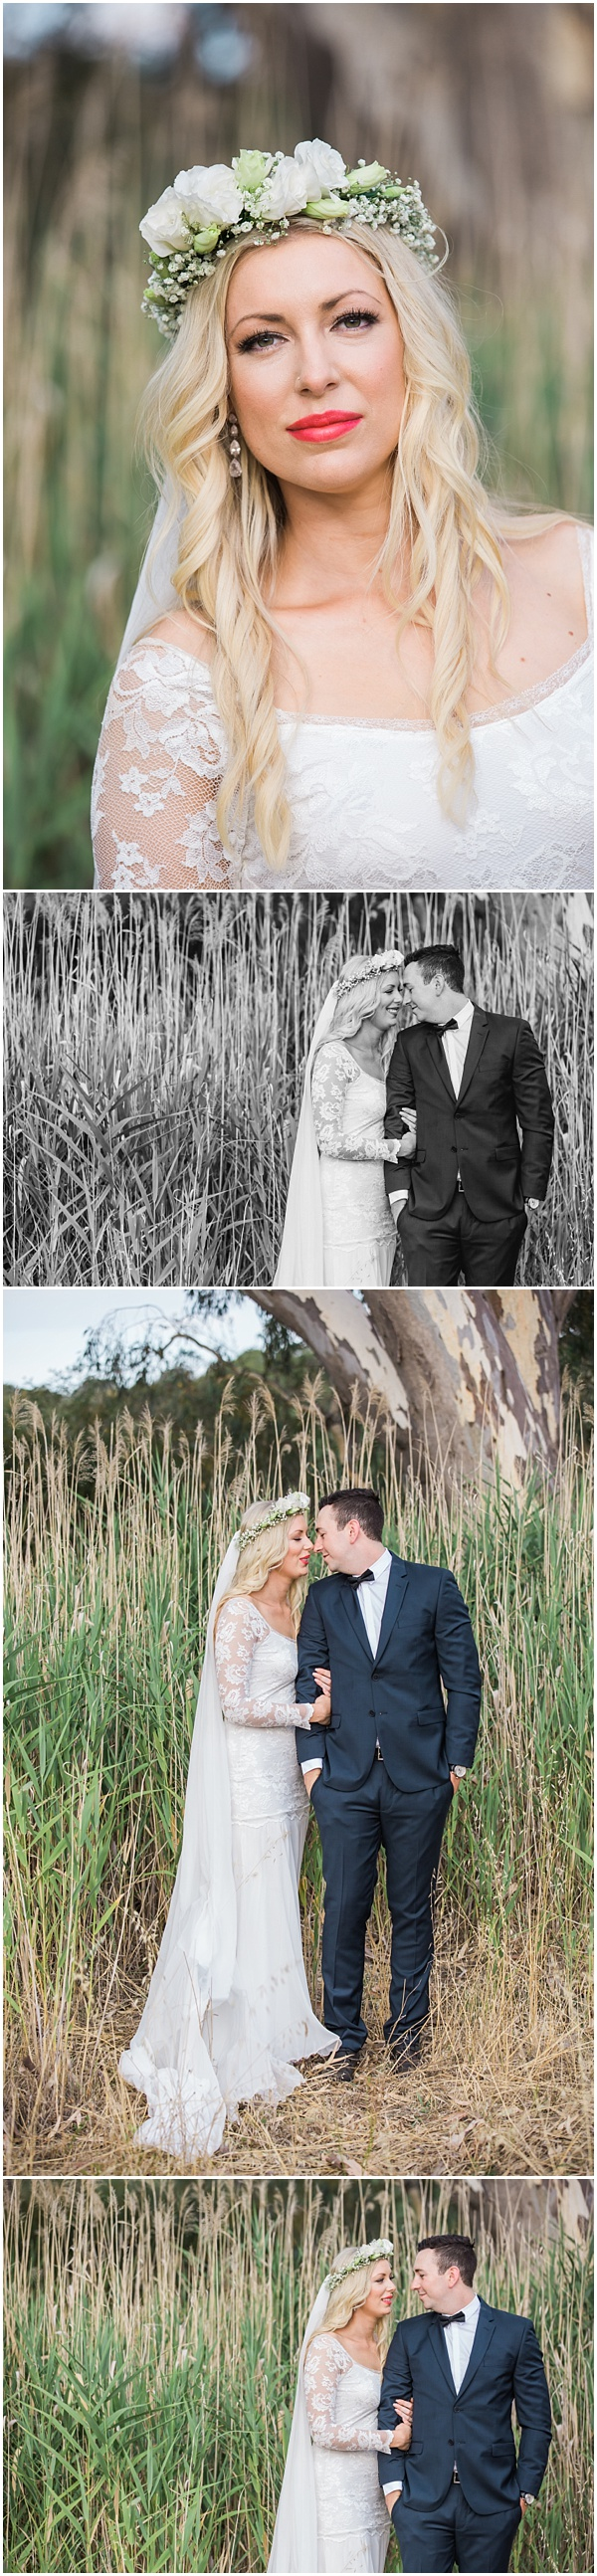 Bendigo Echuca Macedon Elegant Country Wedding Photography_0018